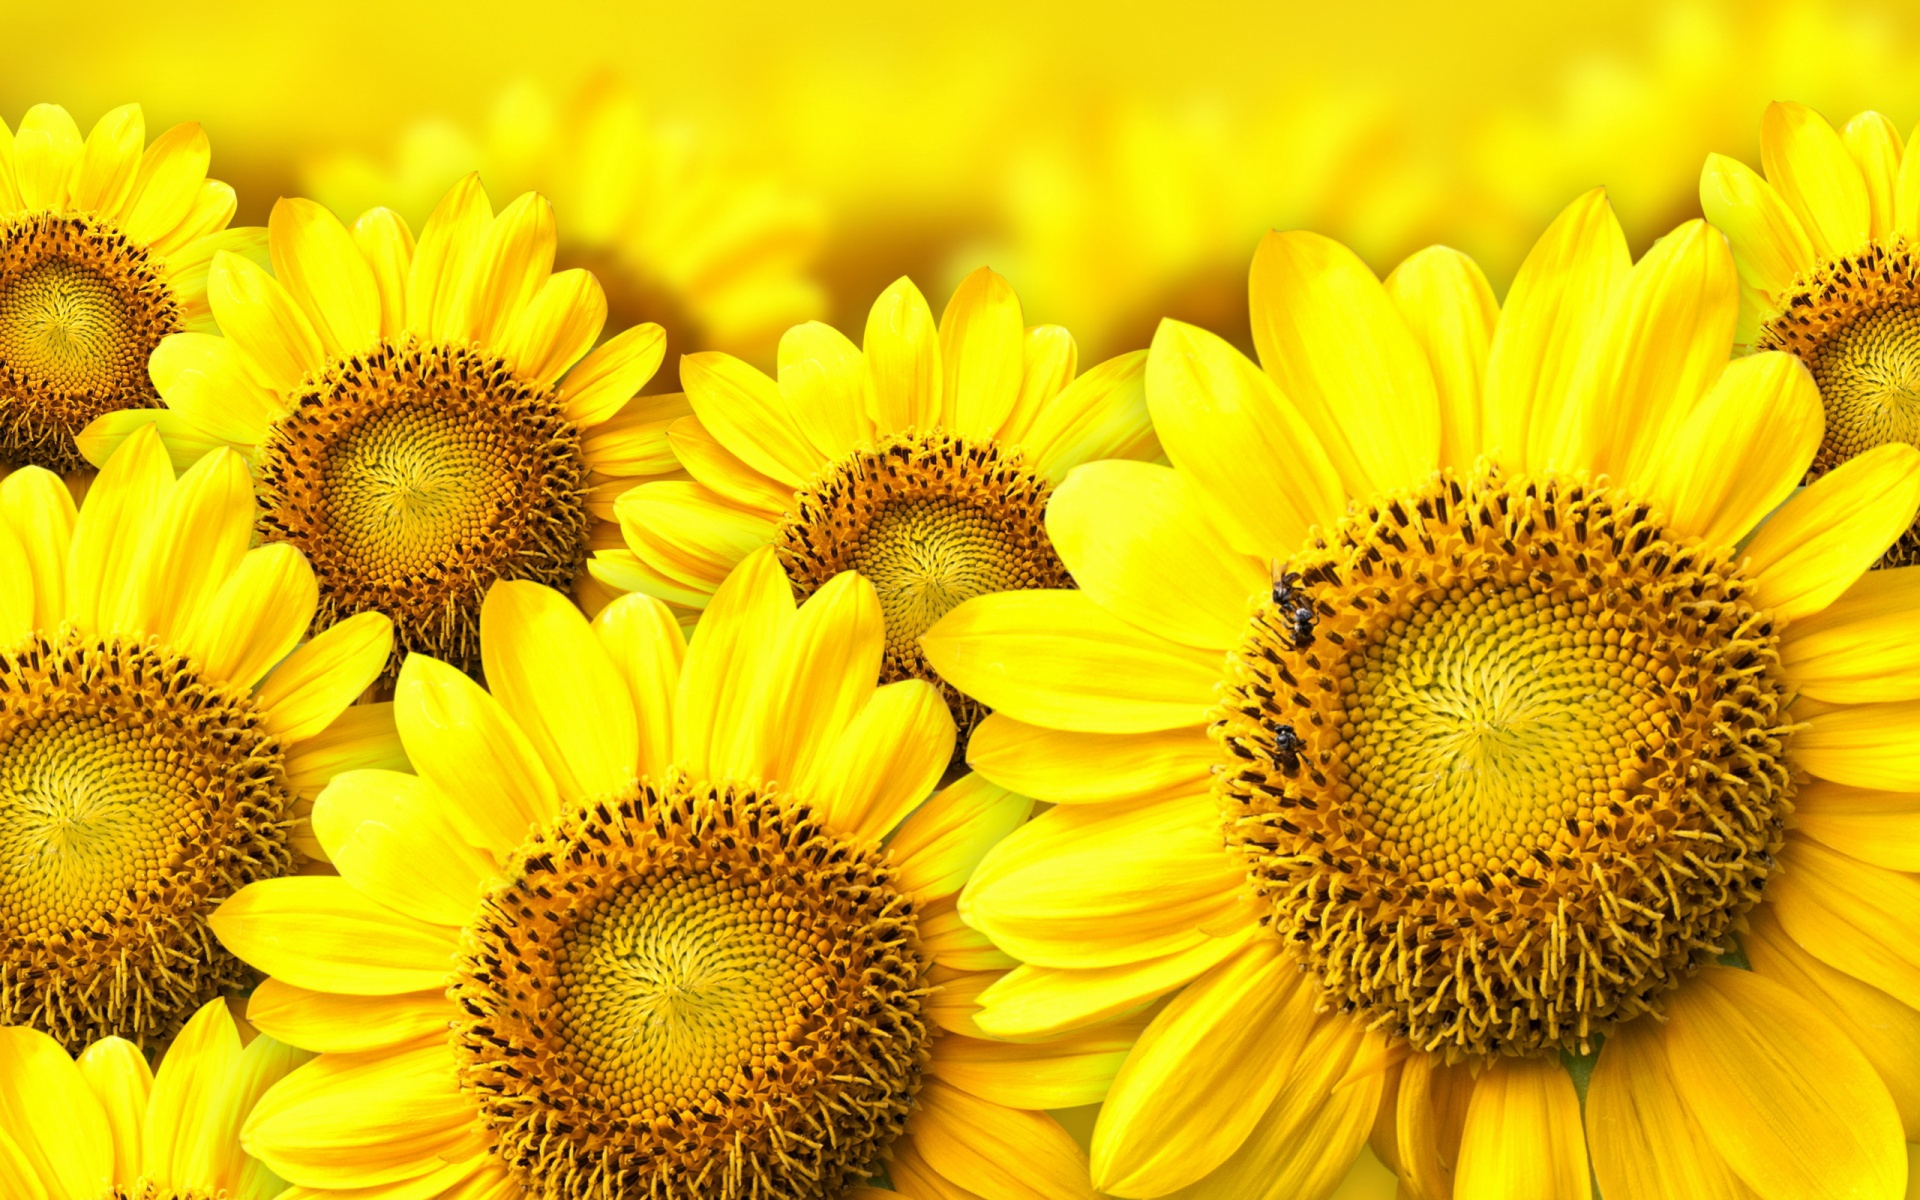 Sunflower Desktop